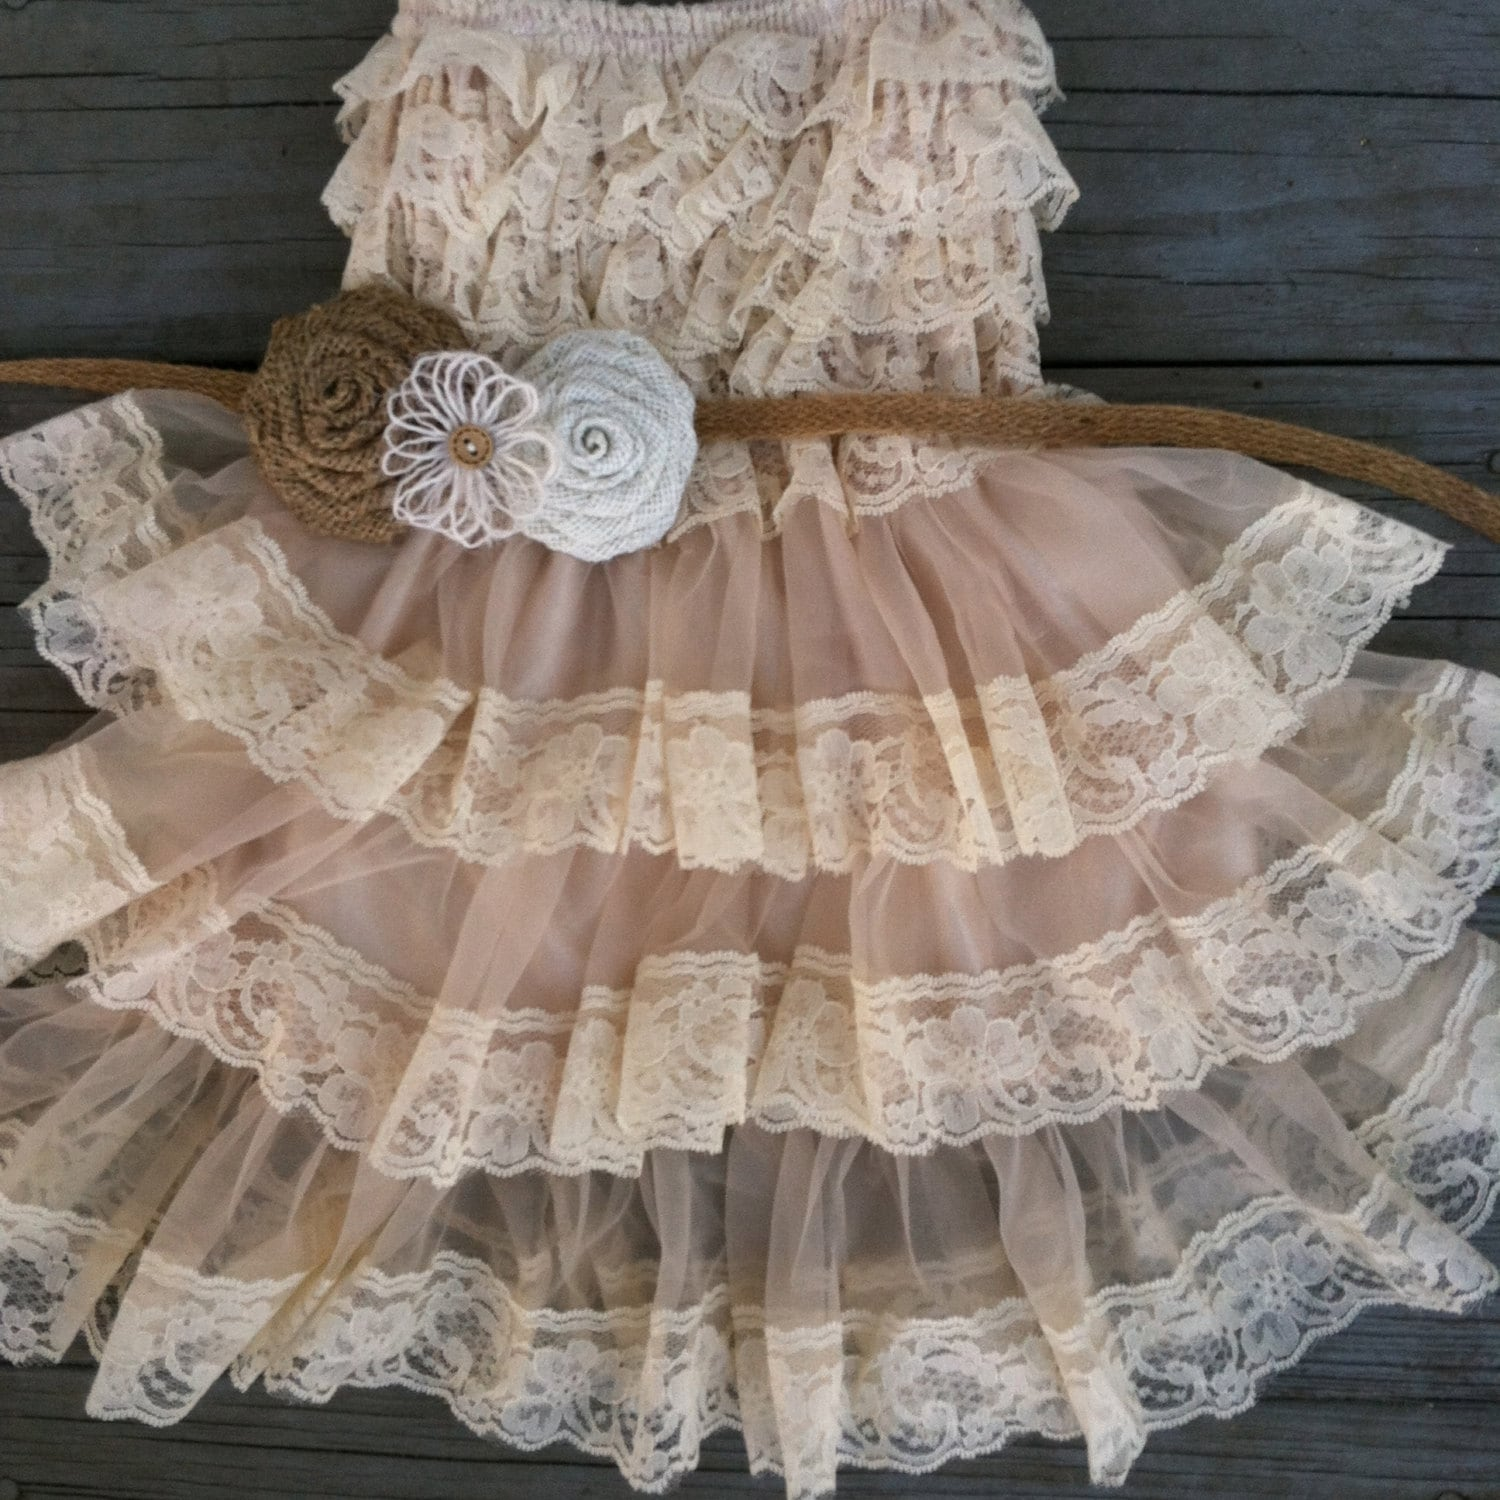 Rustic Flower Girl Lace Pettidress Rustic by CountryCoutureCo